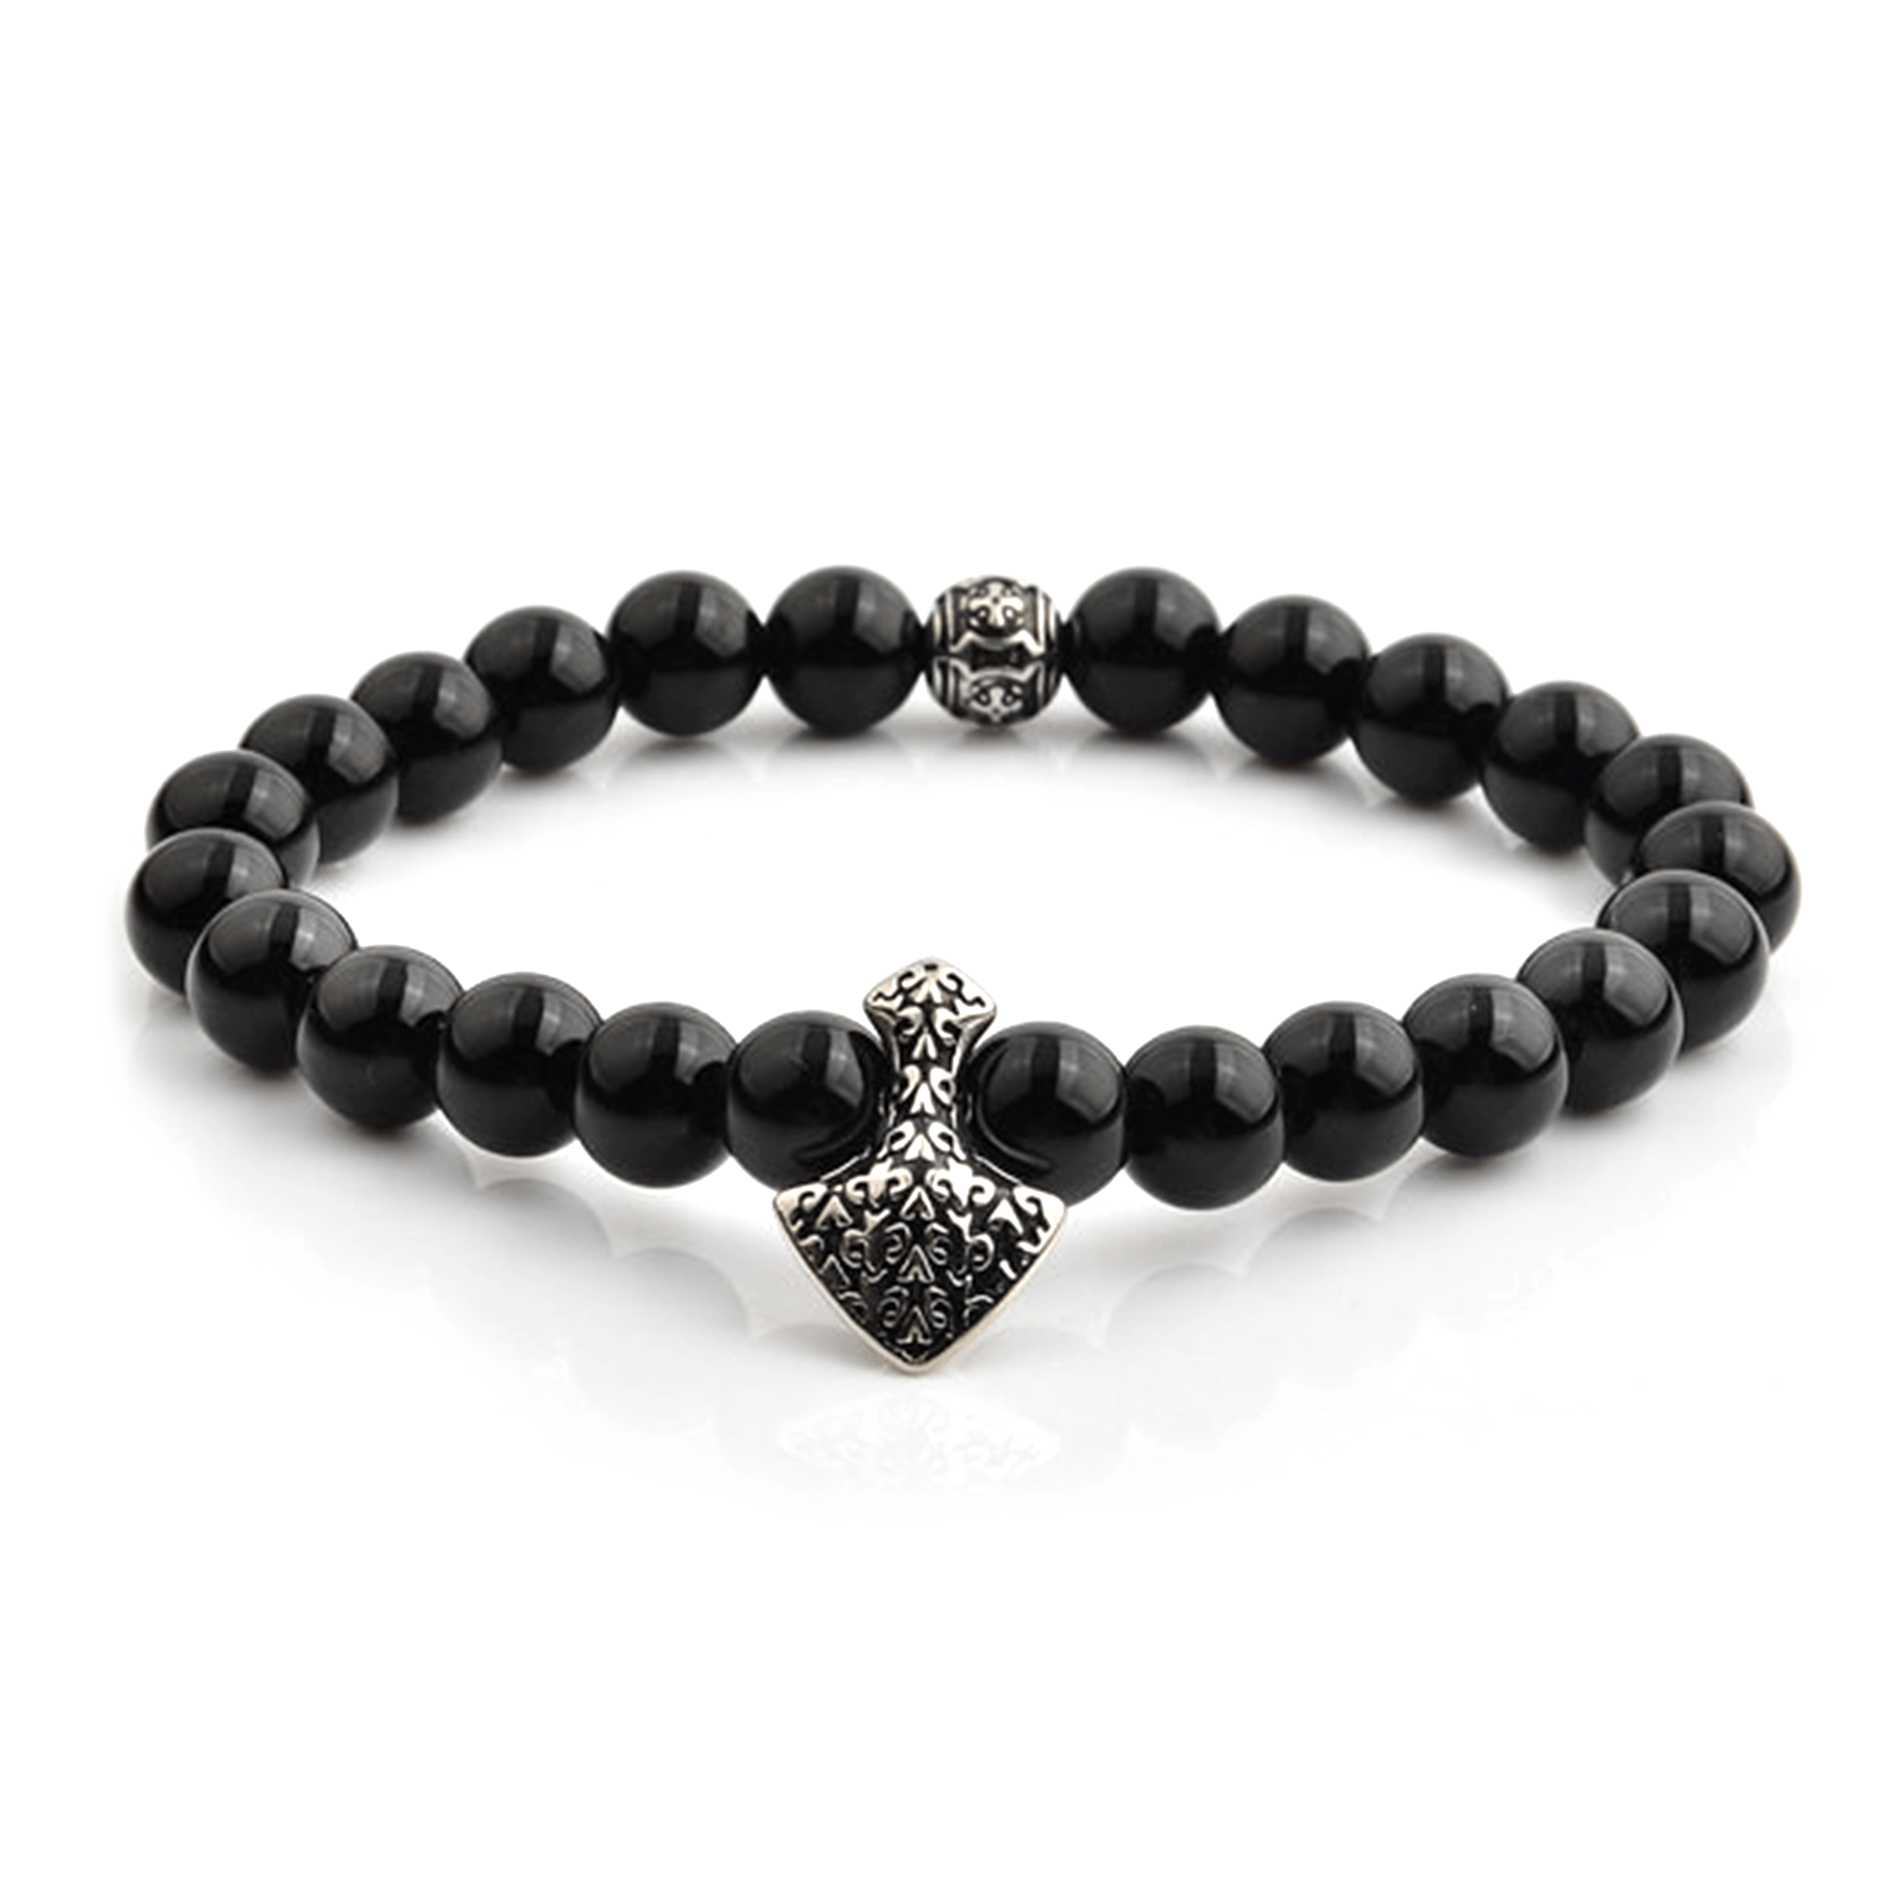 HYLIZO X Series 430 - Black Gloss beaded Shield Edition bracelet with 316 Stainless Steel Shield with fleur de lis engraving